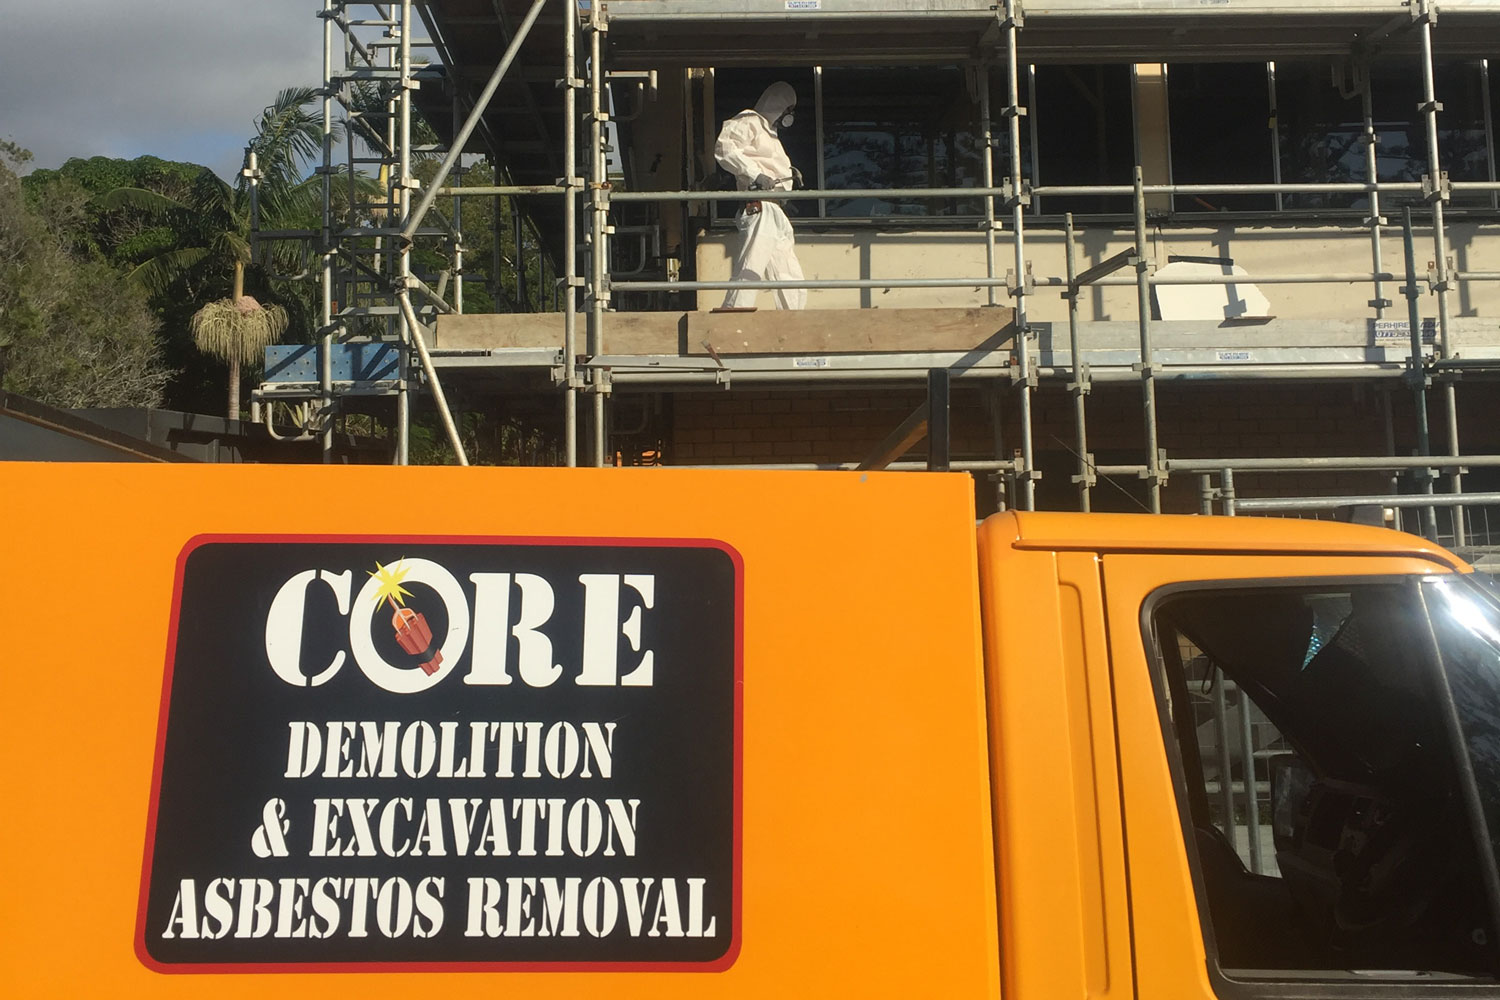 asbestos removal core demolition brunswick heads